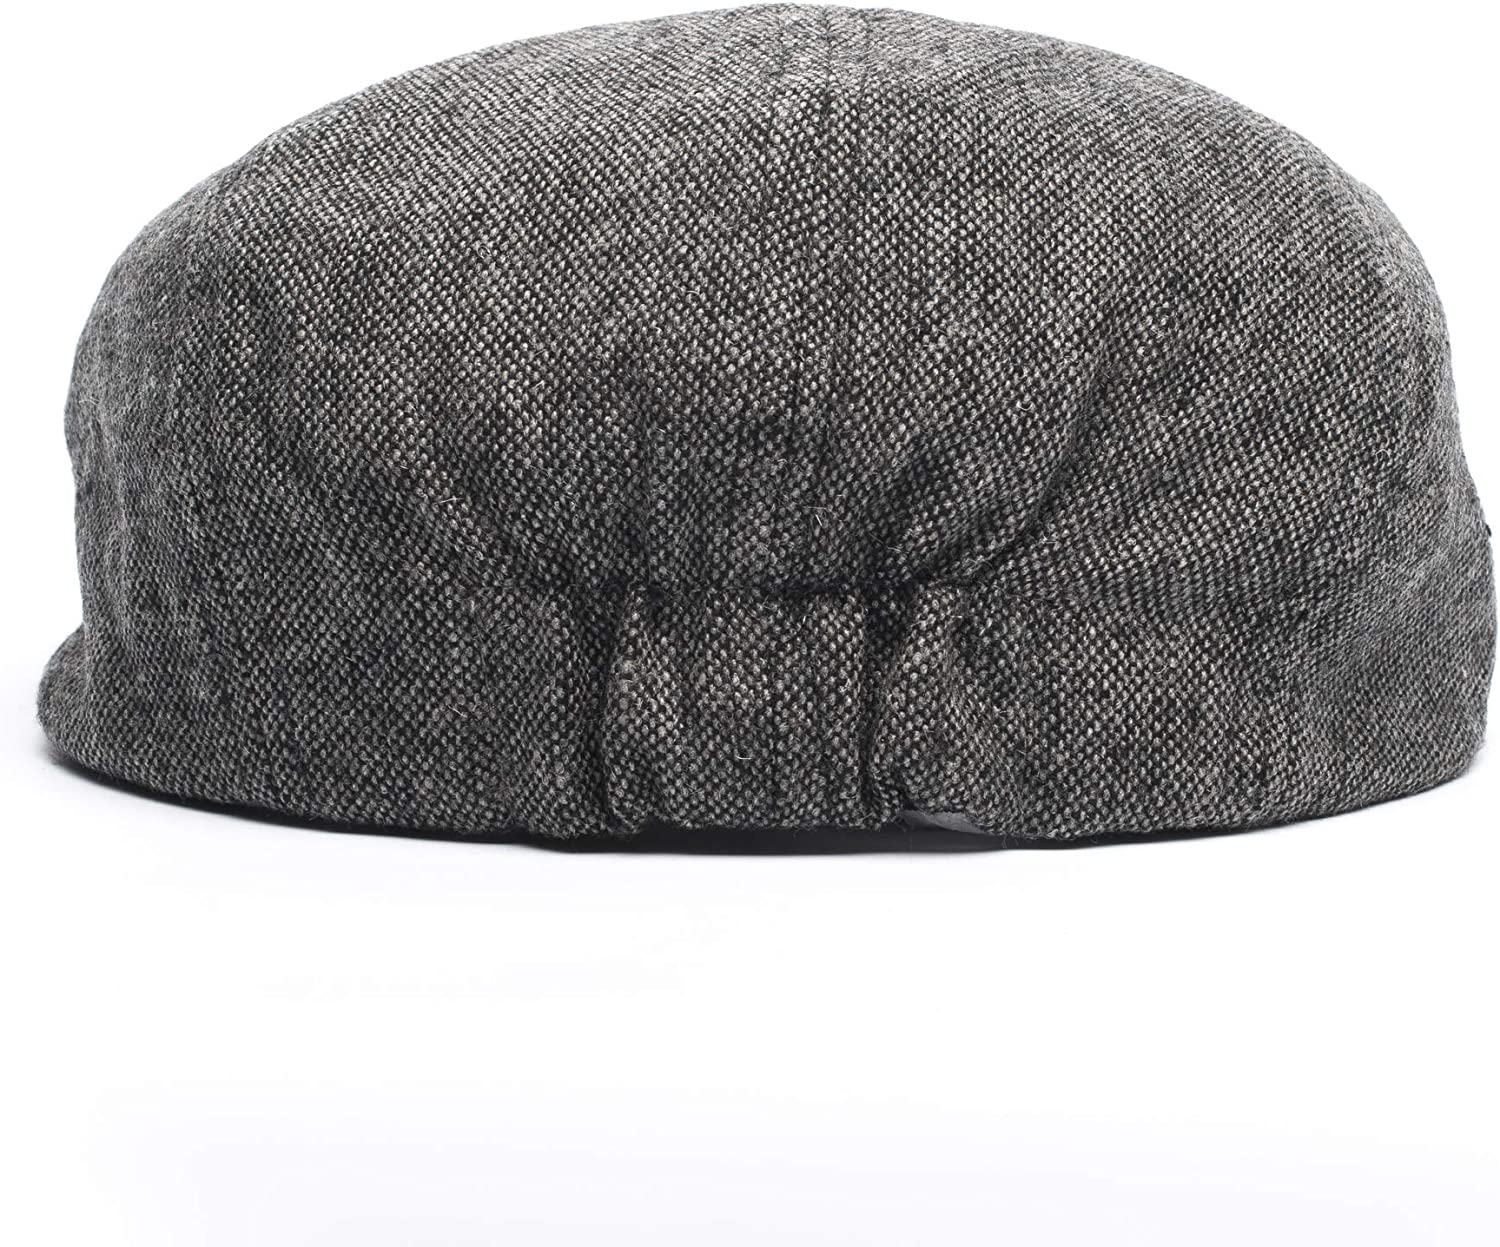 Sizes 6-12 Months up to 8 Years Boys Tweed Flat Cap